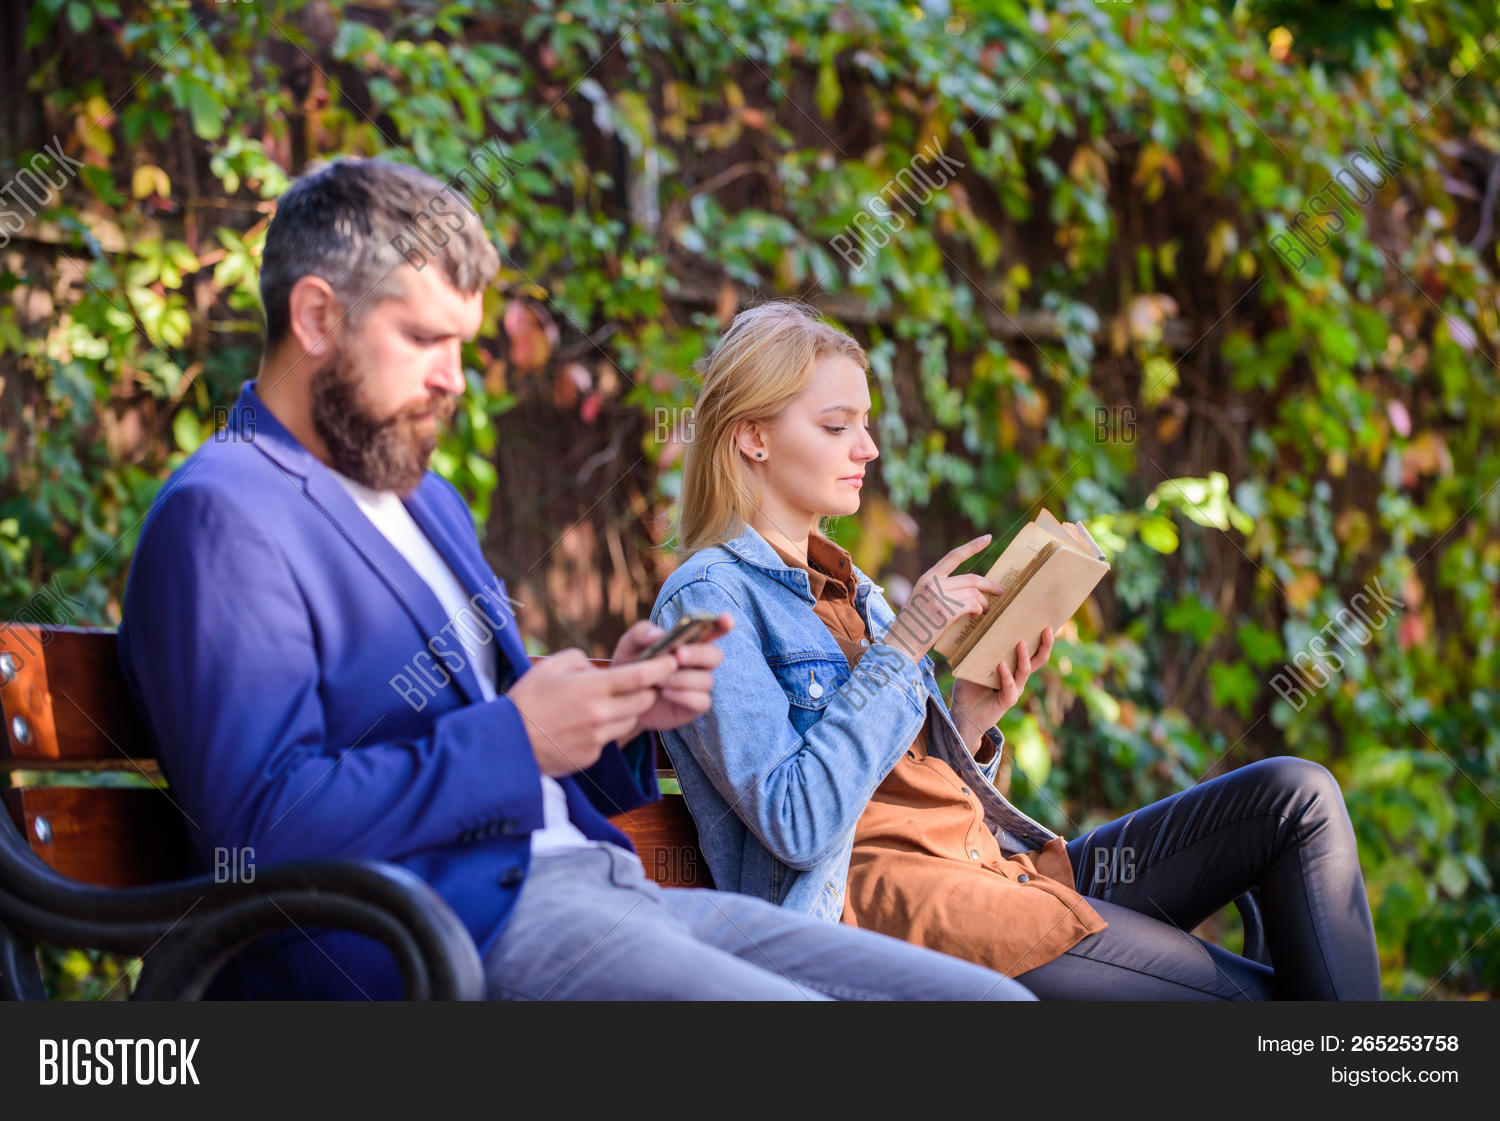 3G,4G,adorable,alternative,beard,bearded,book,cell,concentrated,concept,couple,cute,device,ebook,enjoy,gadget,get,girl,guy,handsome,hipster,hobby,information,interesting,internet,learn,leisure,literature,man,mobile,nature,park,phone,pleasant,pretty,read,reading,relax,smartphone,storage,study,stylish,surfing,virtual,while,woman,world